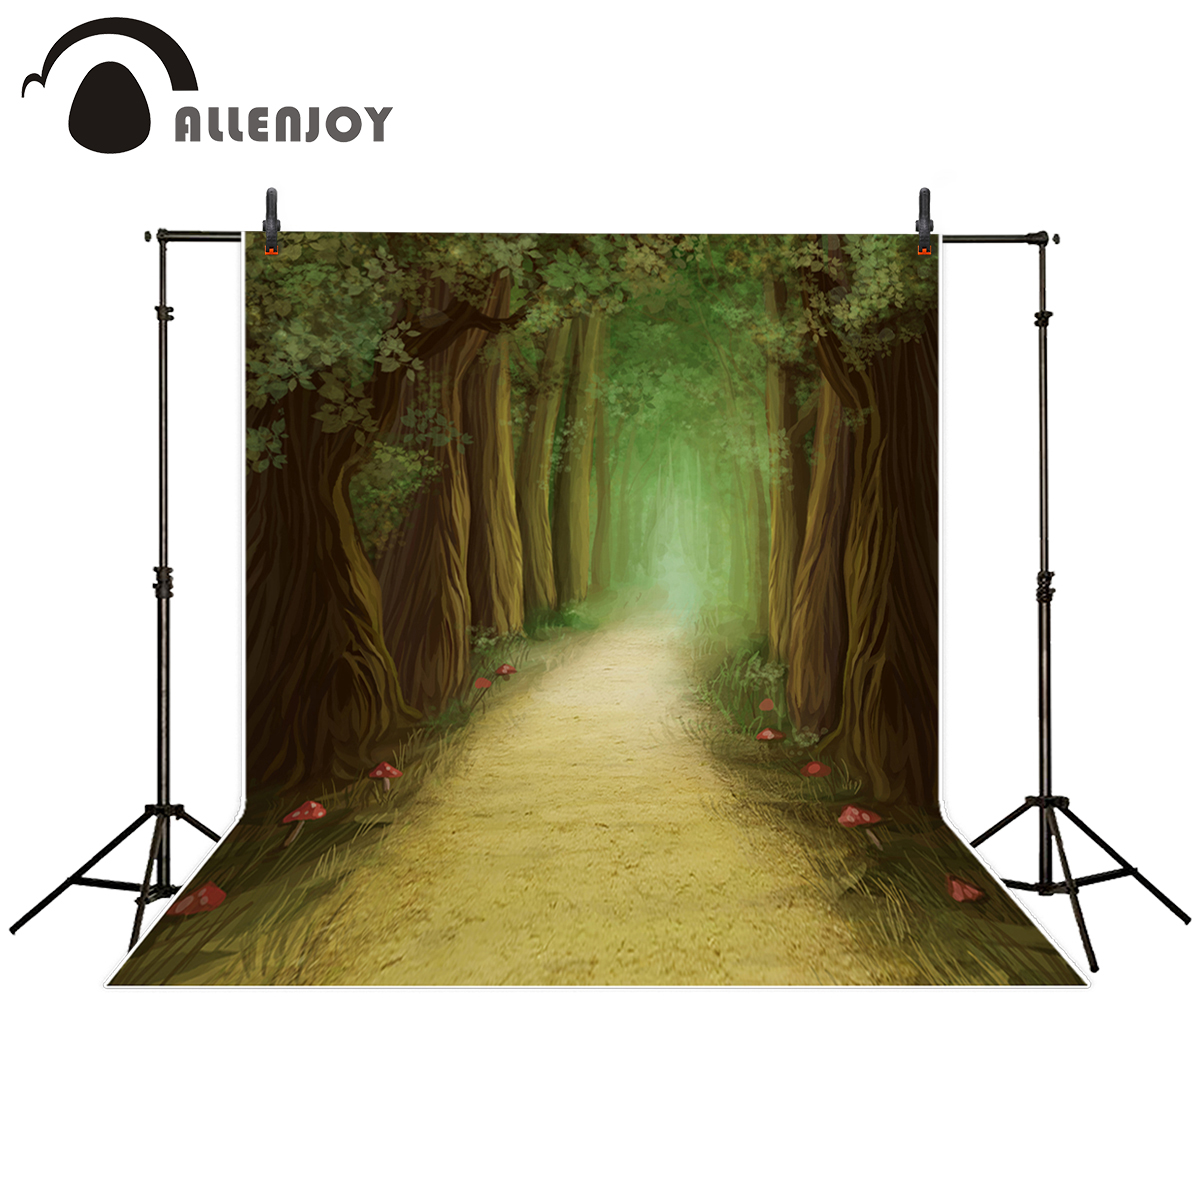 Allenjoy photography backdrop Oil painting style forest Path mushroom fairy tale background for photo studio camera fotografica fairy tale background mushroom fantasy photo backdrops cartoon photocall fotografica for child photography studio kate 5x7ft